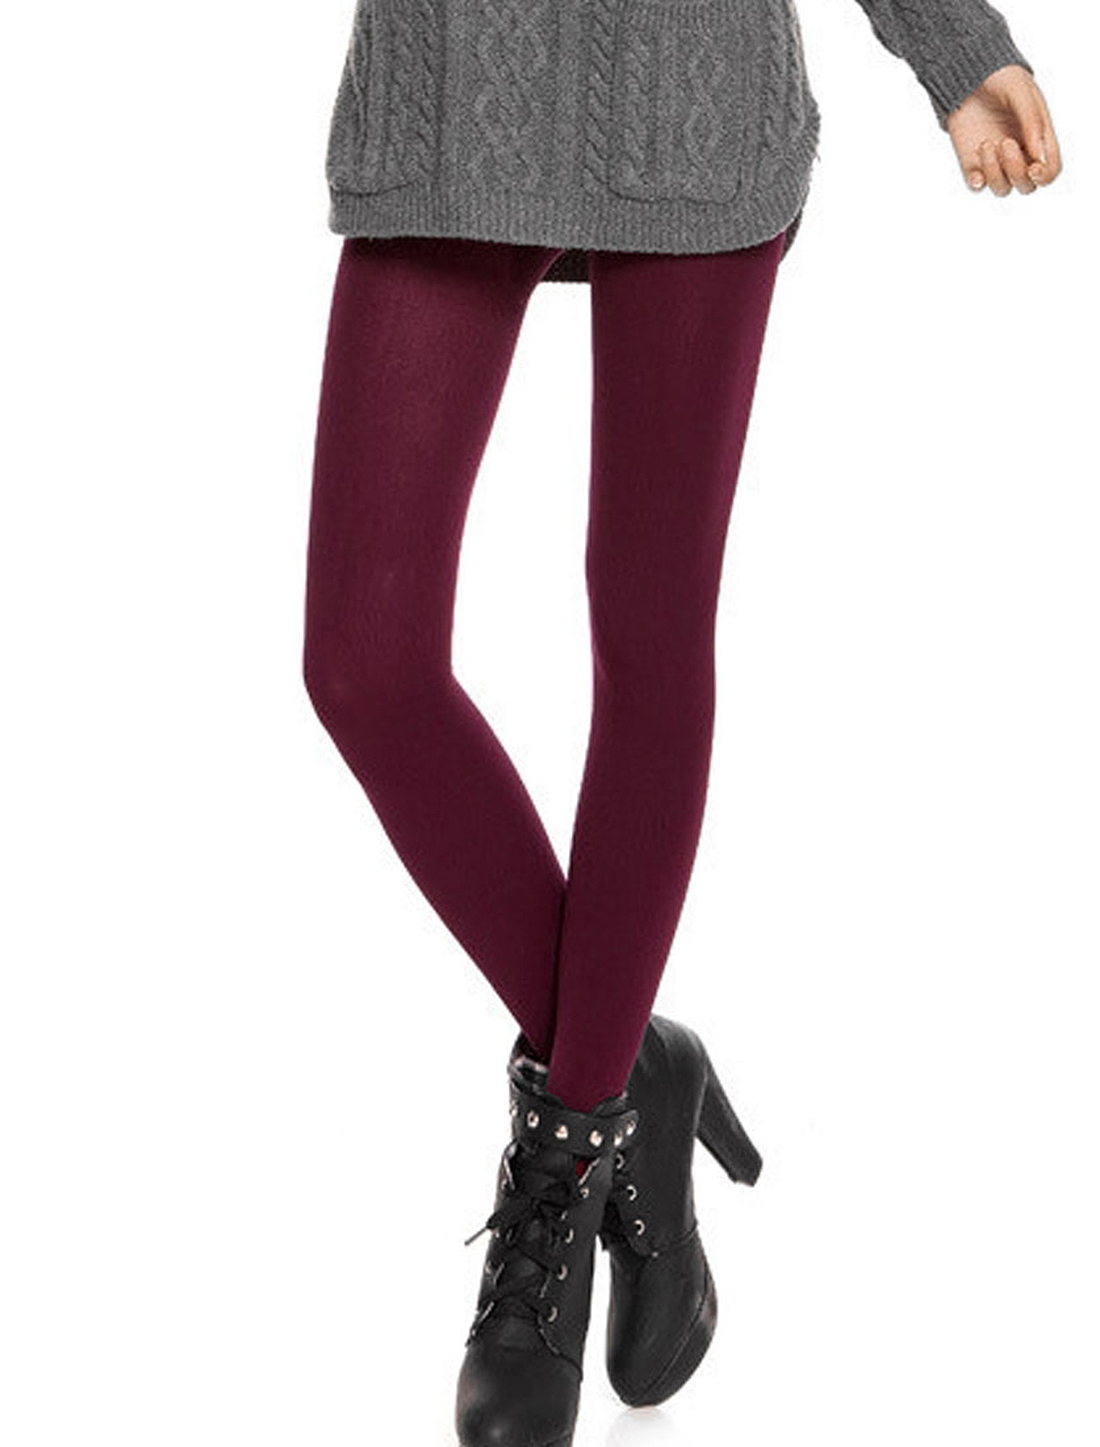 Women Korea Style Elastic Waistband Stirrup Pantyhose Leggings Burgundy XS